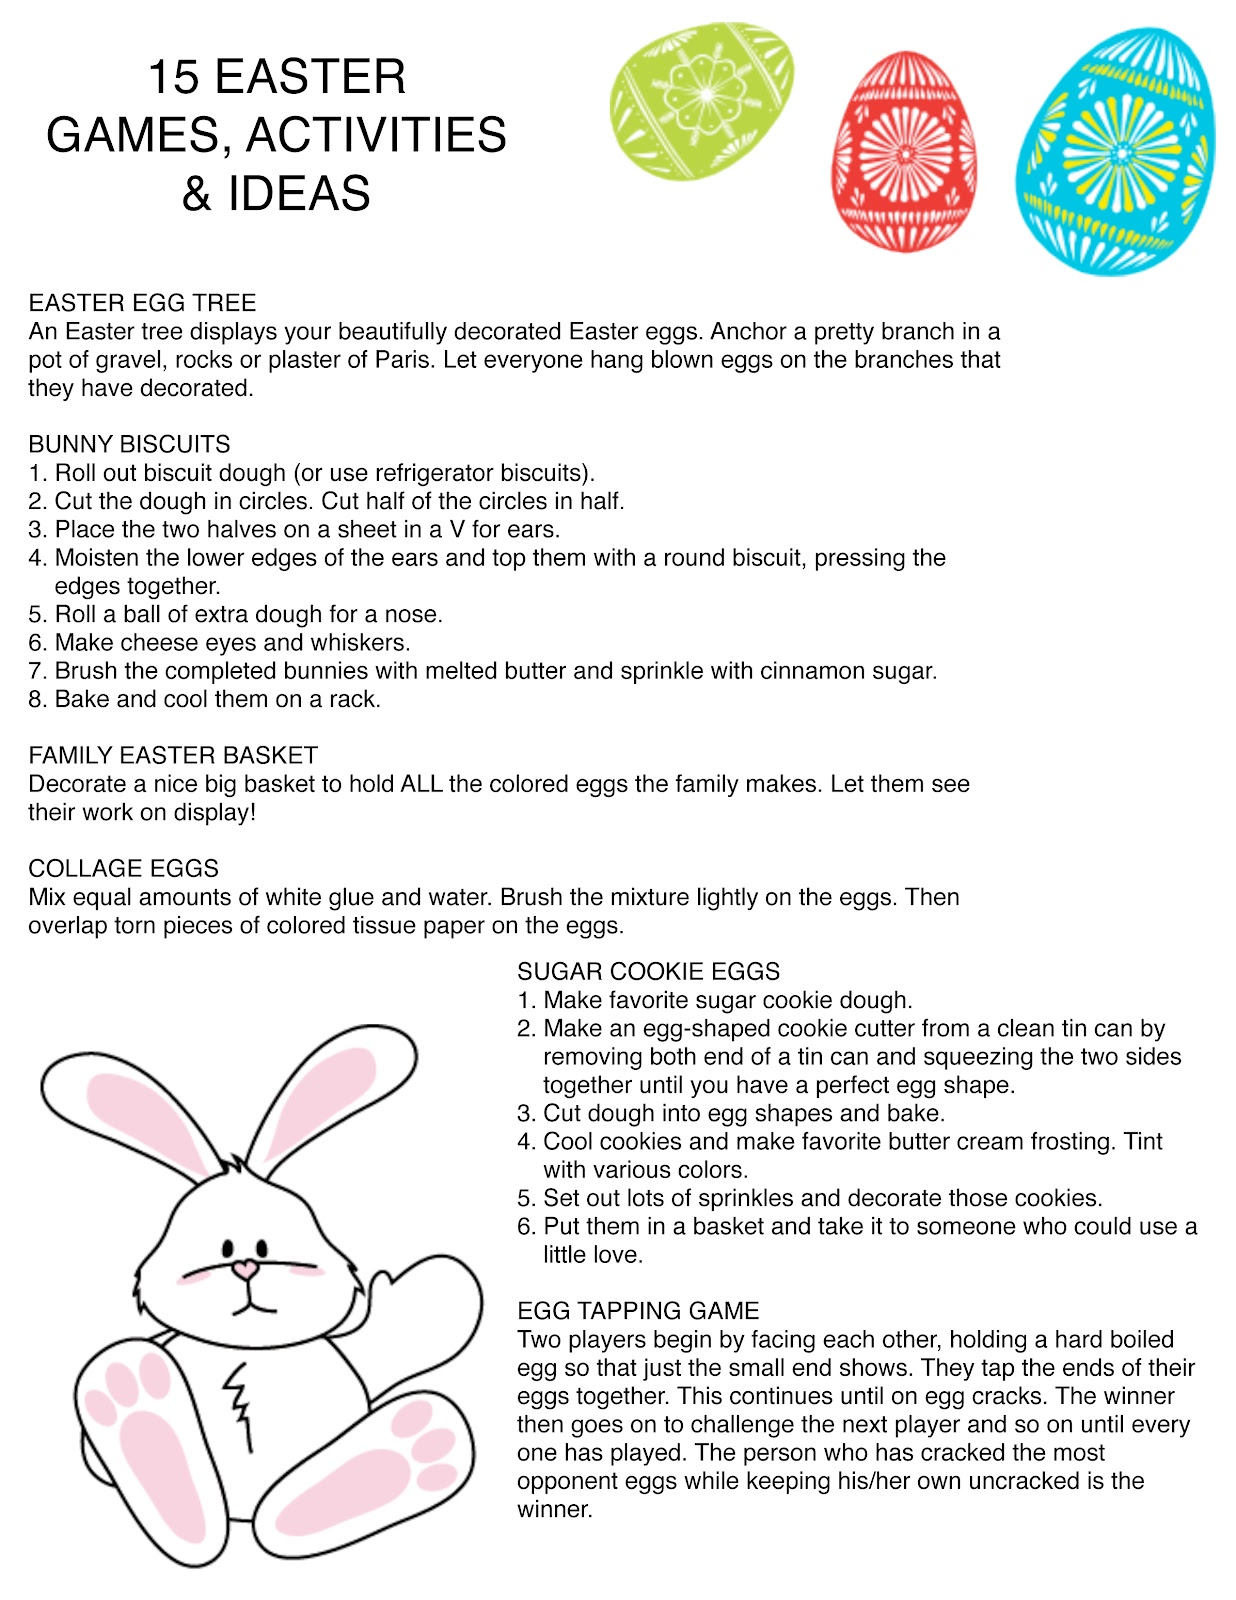 15 Easter Games, Activities U0026 Ideas (Printable)